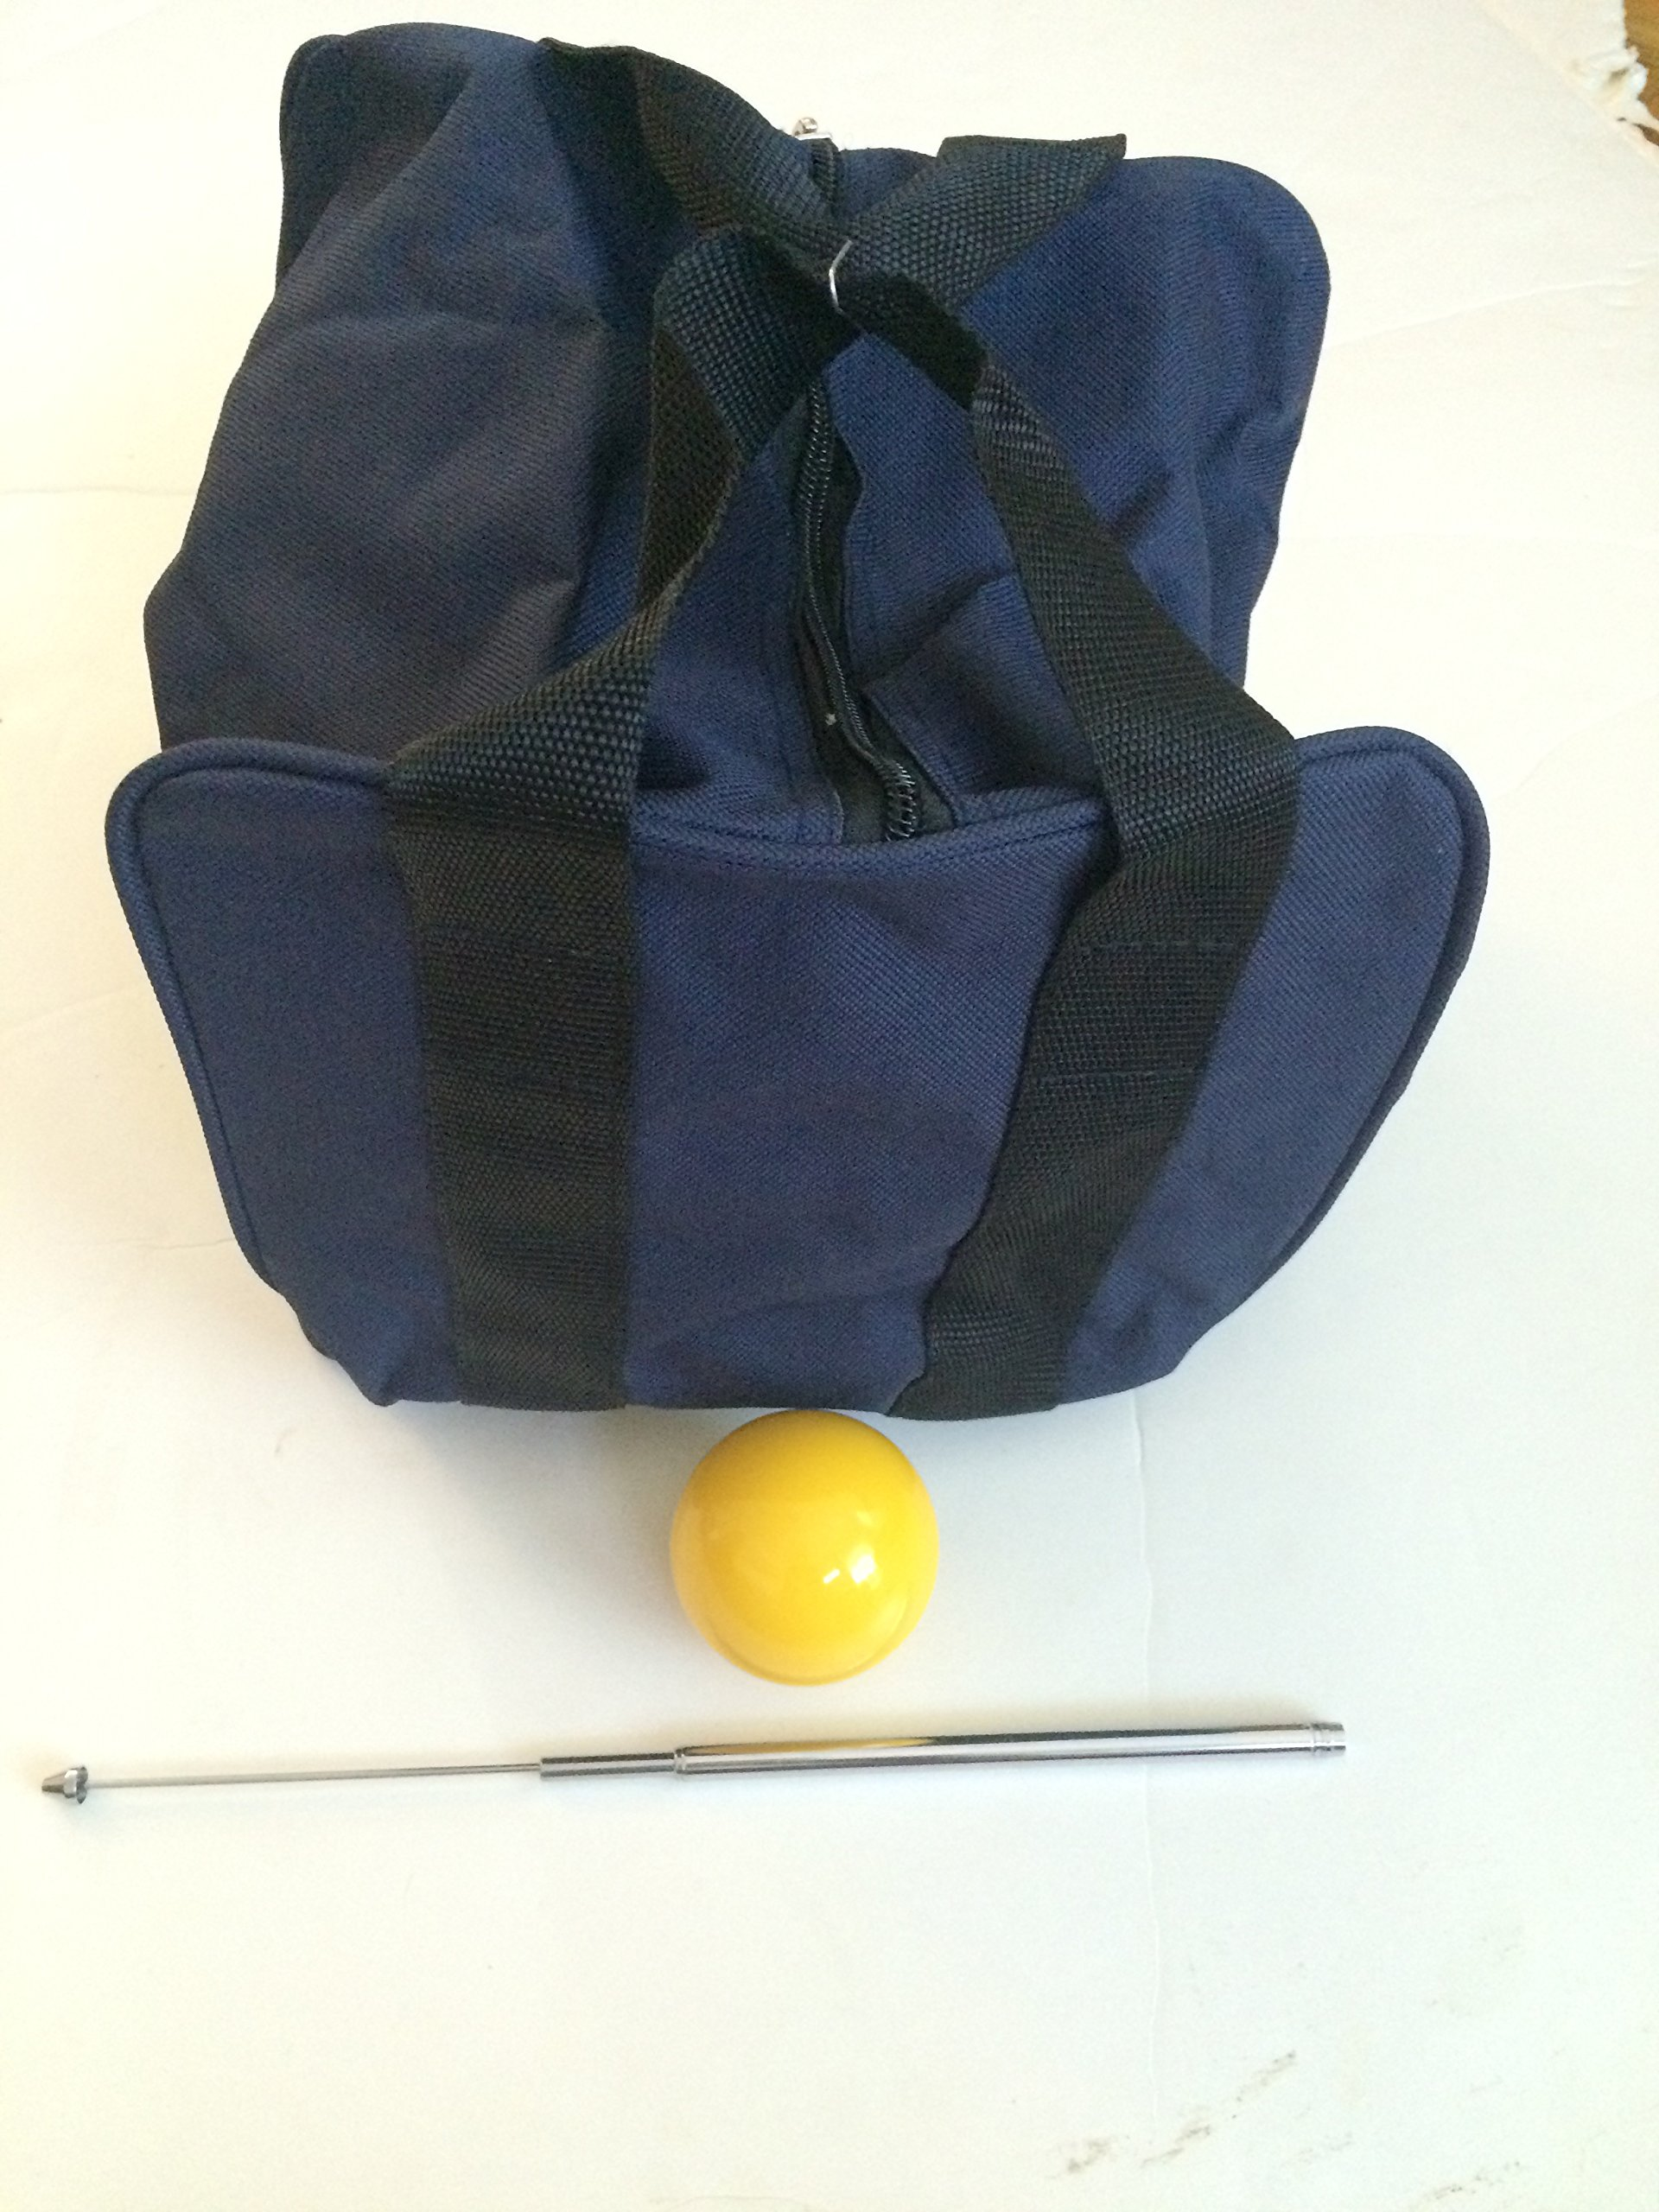 Unique Bocce Accessories Package - Extra Heavy Duty Nylon Bocce Bag (Blue with Black Handles), Yellow pallina, Extendable Measuring Device by BuyBocceBalls